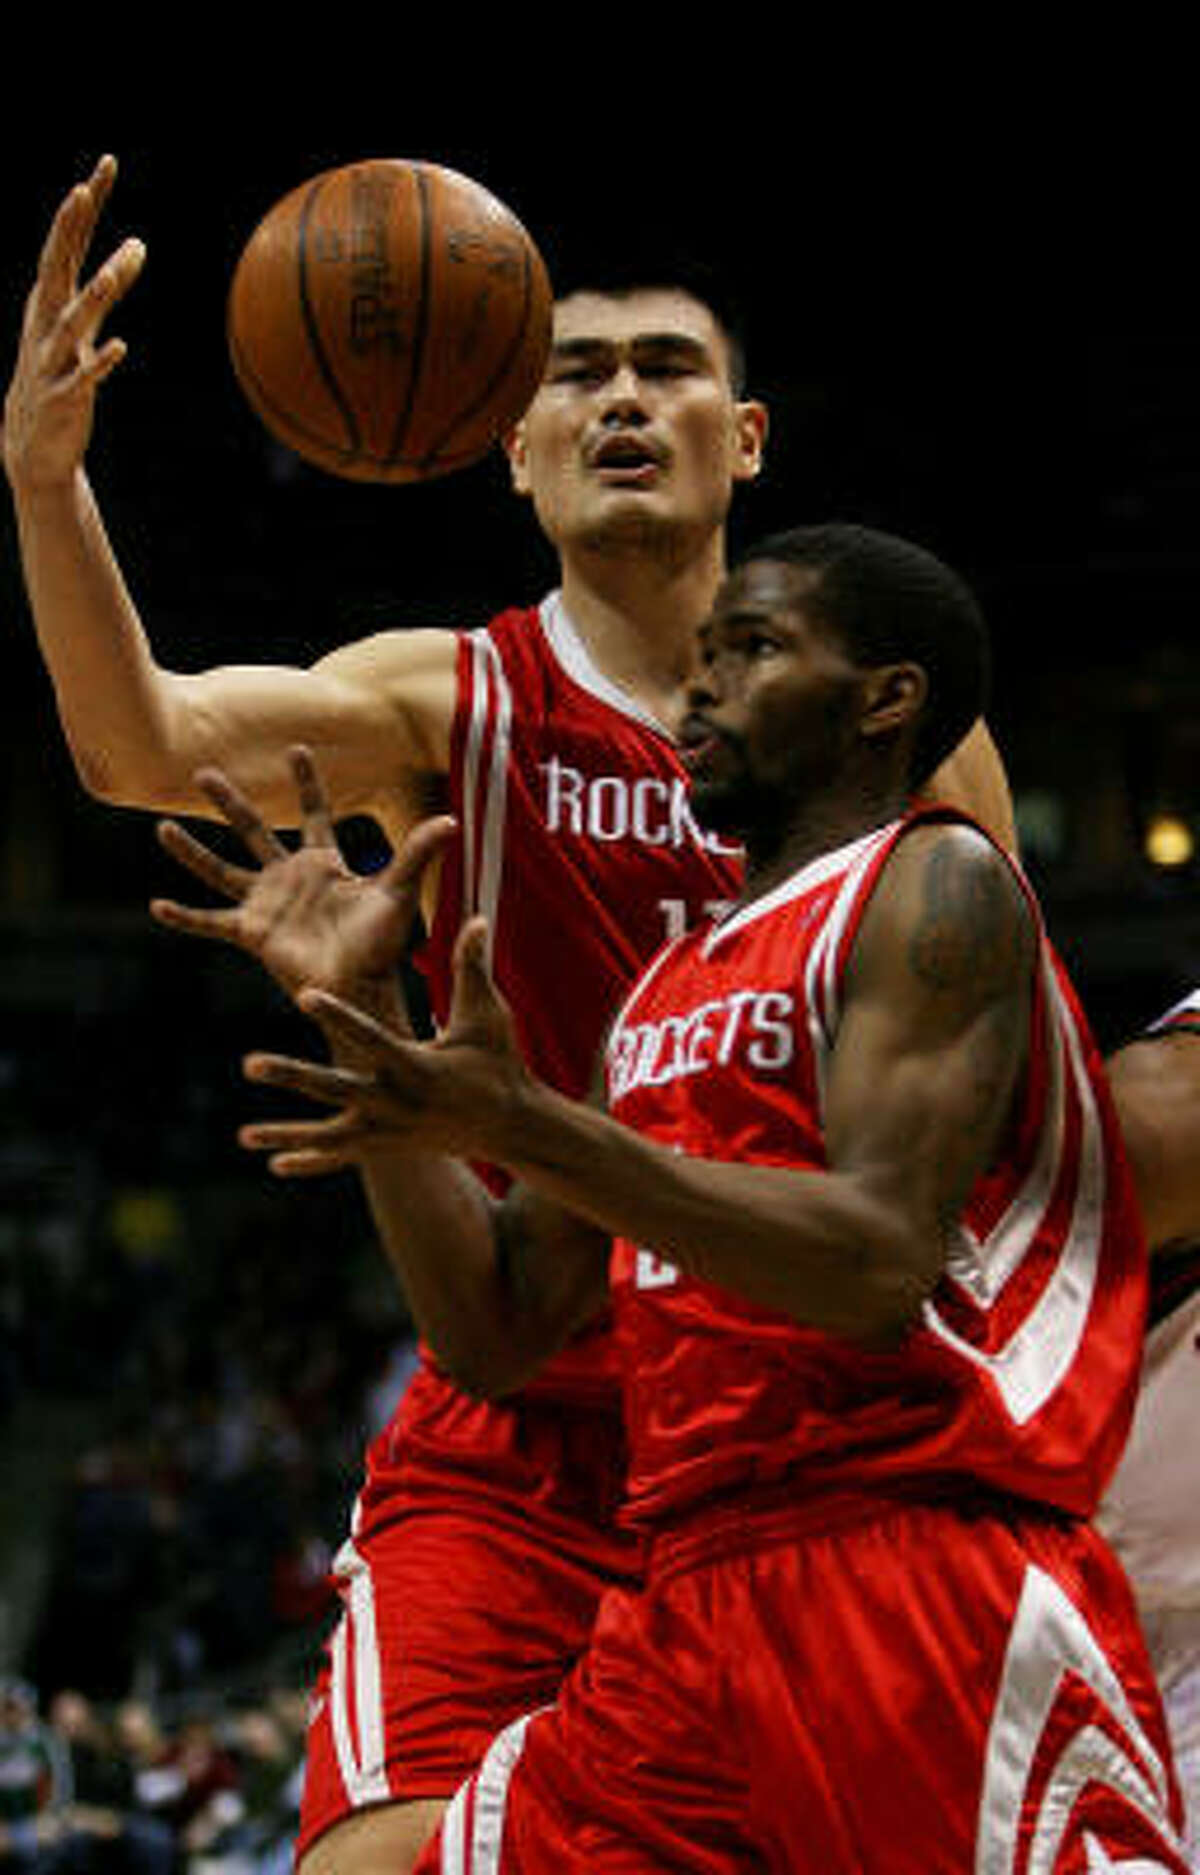 Rockets center Yao Ming, back, and teammate Aaron Brooks try to corral a rebound.